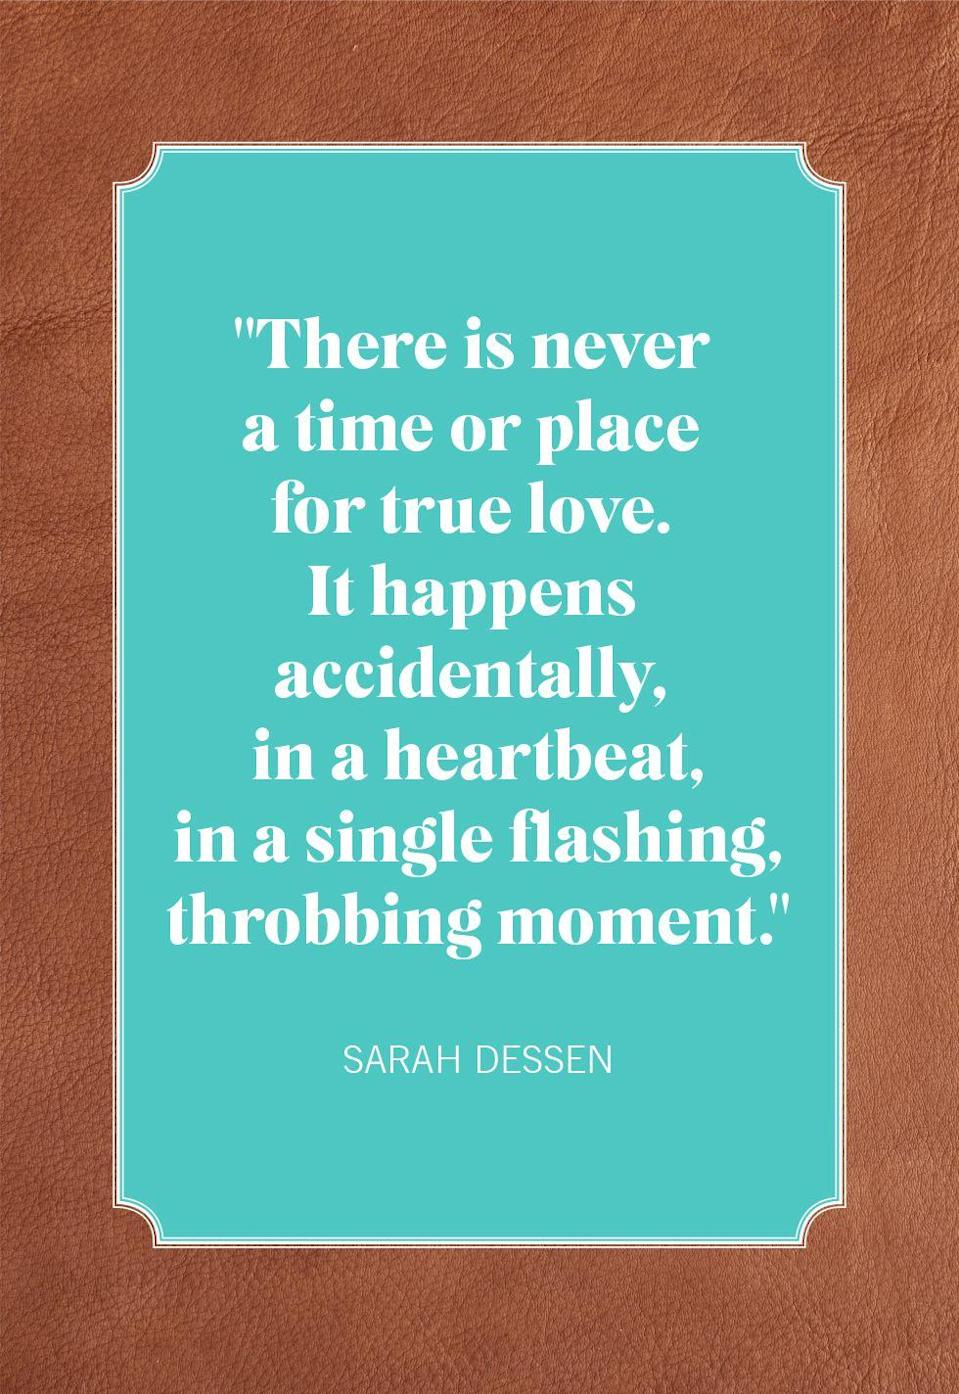 "<p>""There is never a time or place for true love. It happens accidentally, in a heartbeat, in a single flashing, throbbing moment.""</p>"